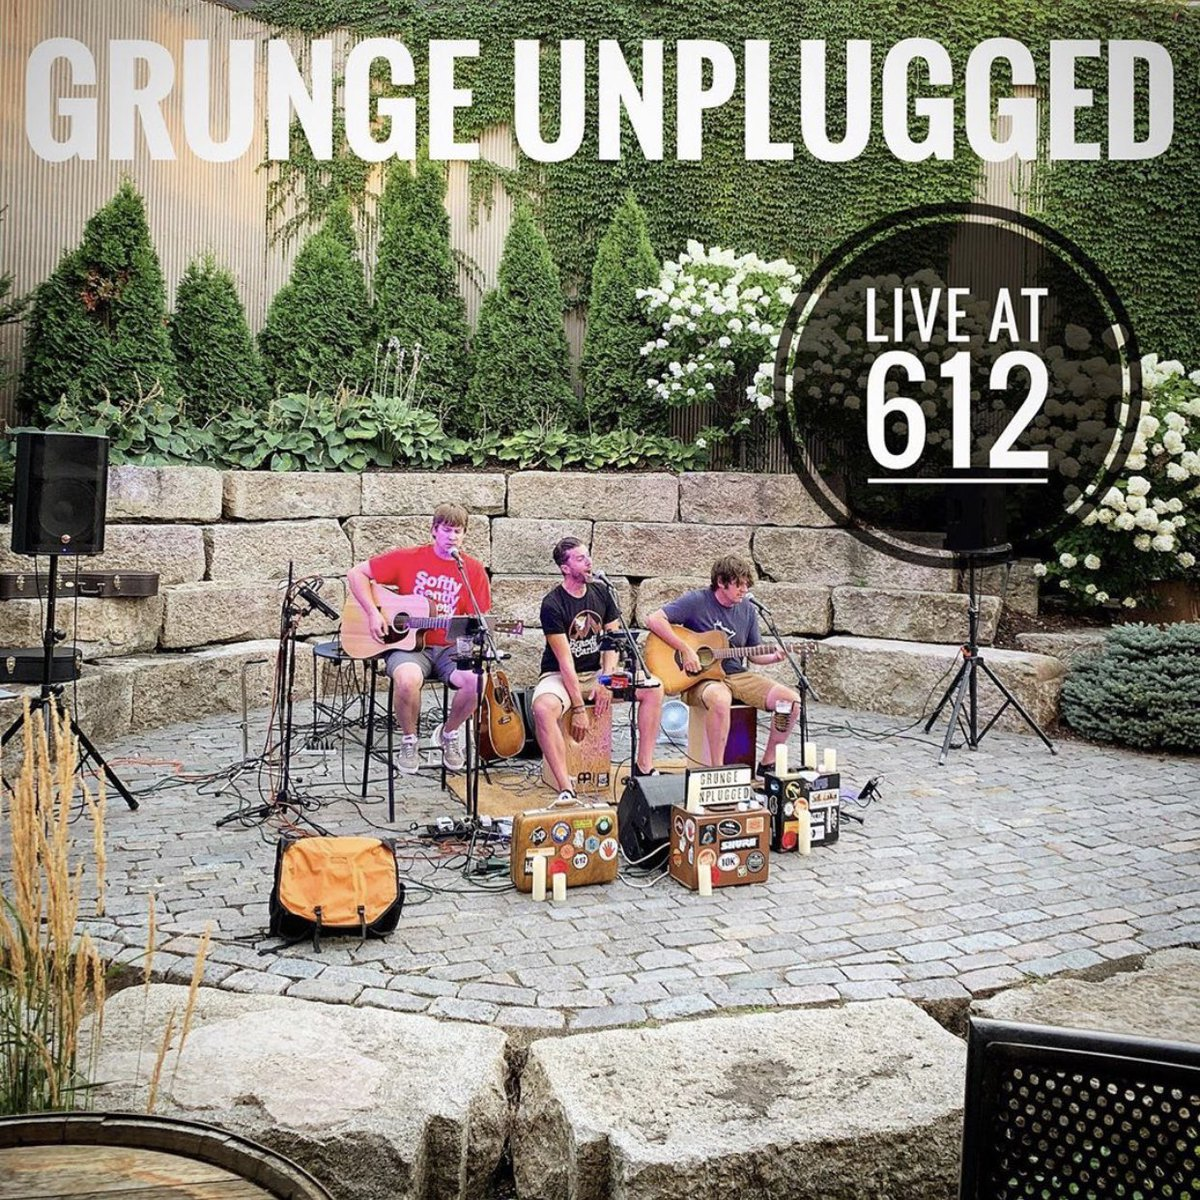 LIVE MUSIC TONIGHT Don't miss the patio party! @grungeunplugged takes the stage Saturday at 6PM. We're accepting walk-up reservations so arrive early to grab a table. We have plenty of space for social distancing, please see the host station when you arrive. https://t.co/G6Lam3i2zK